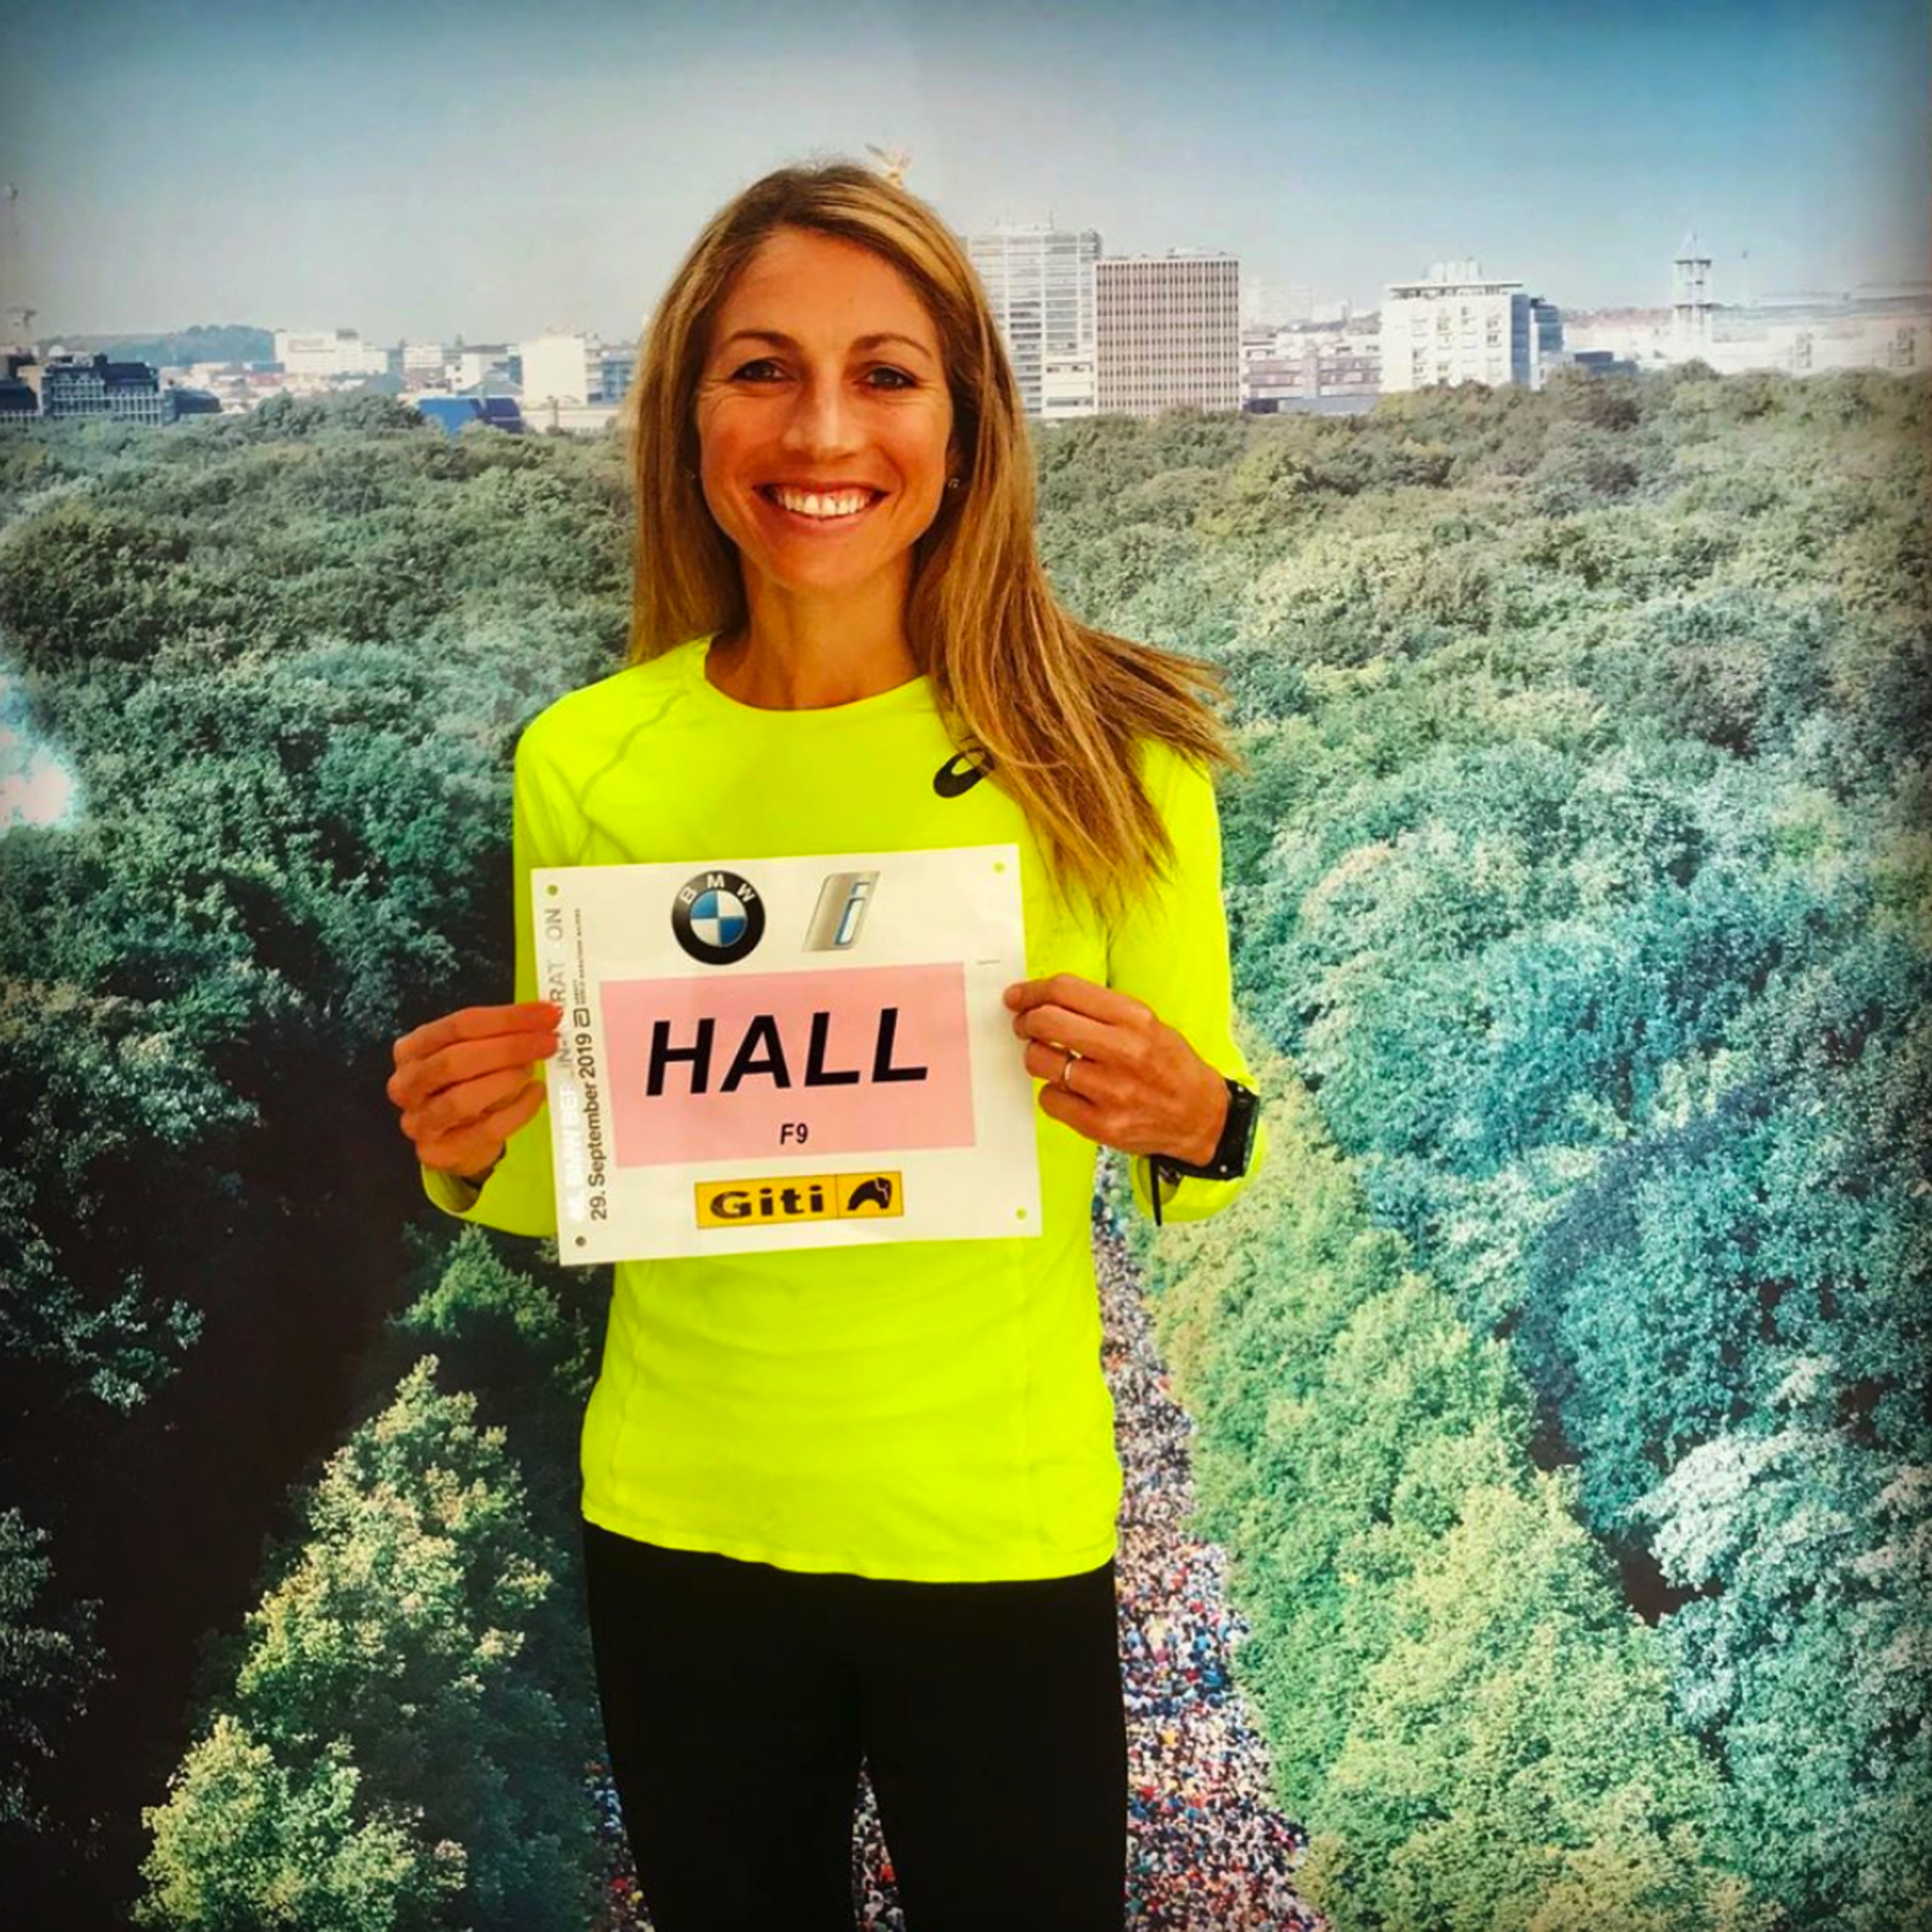 39. Sara Hall: Running Fast and Taking Chances